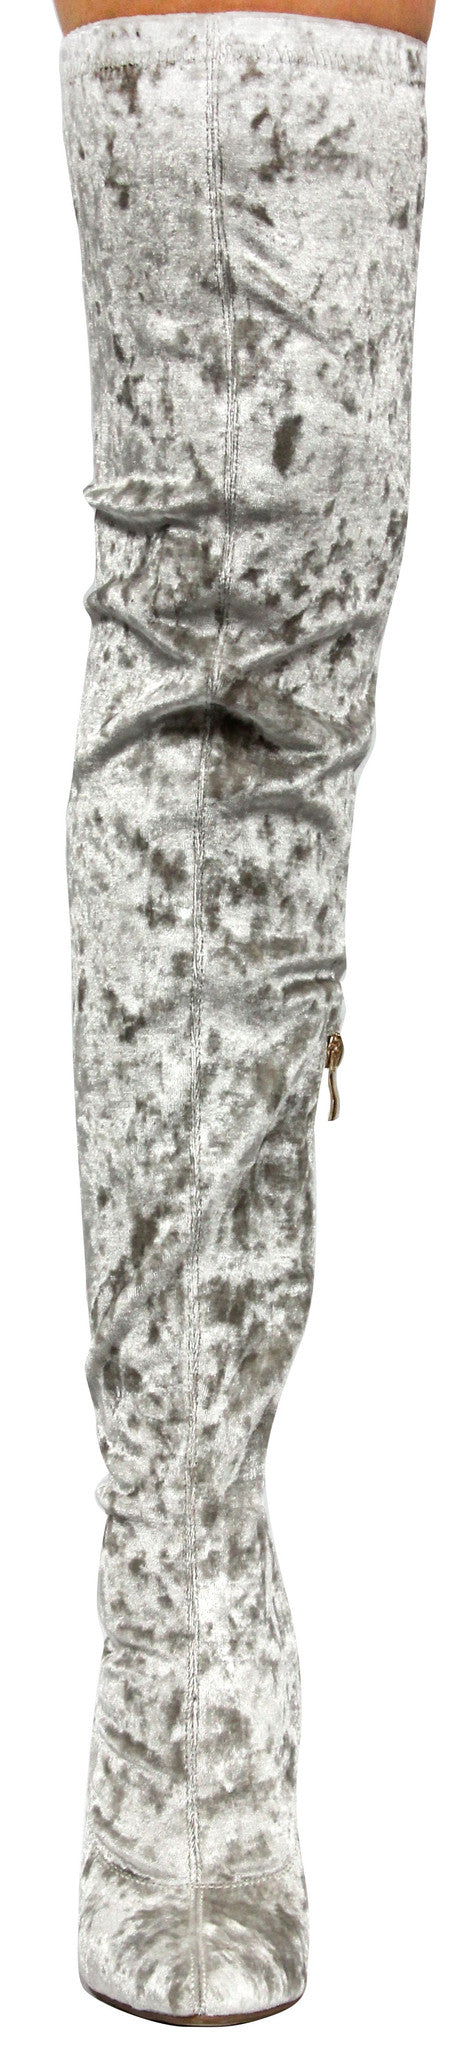 Cape Robbin Paw-27 Gray Crushed Velvet Stretchy Pointy Toe Thigh High Over Knee Block Heel Boot Lite Gray